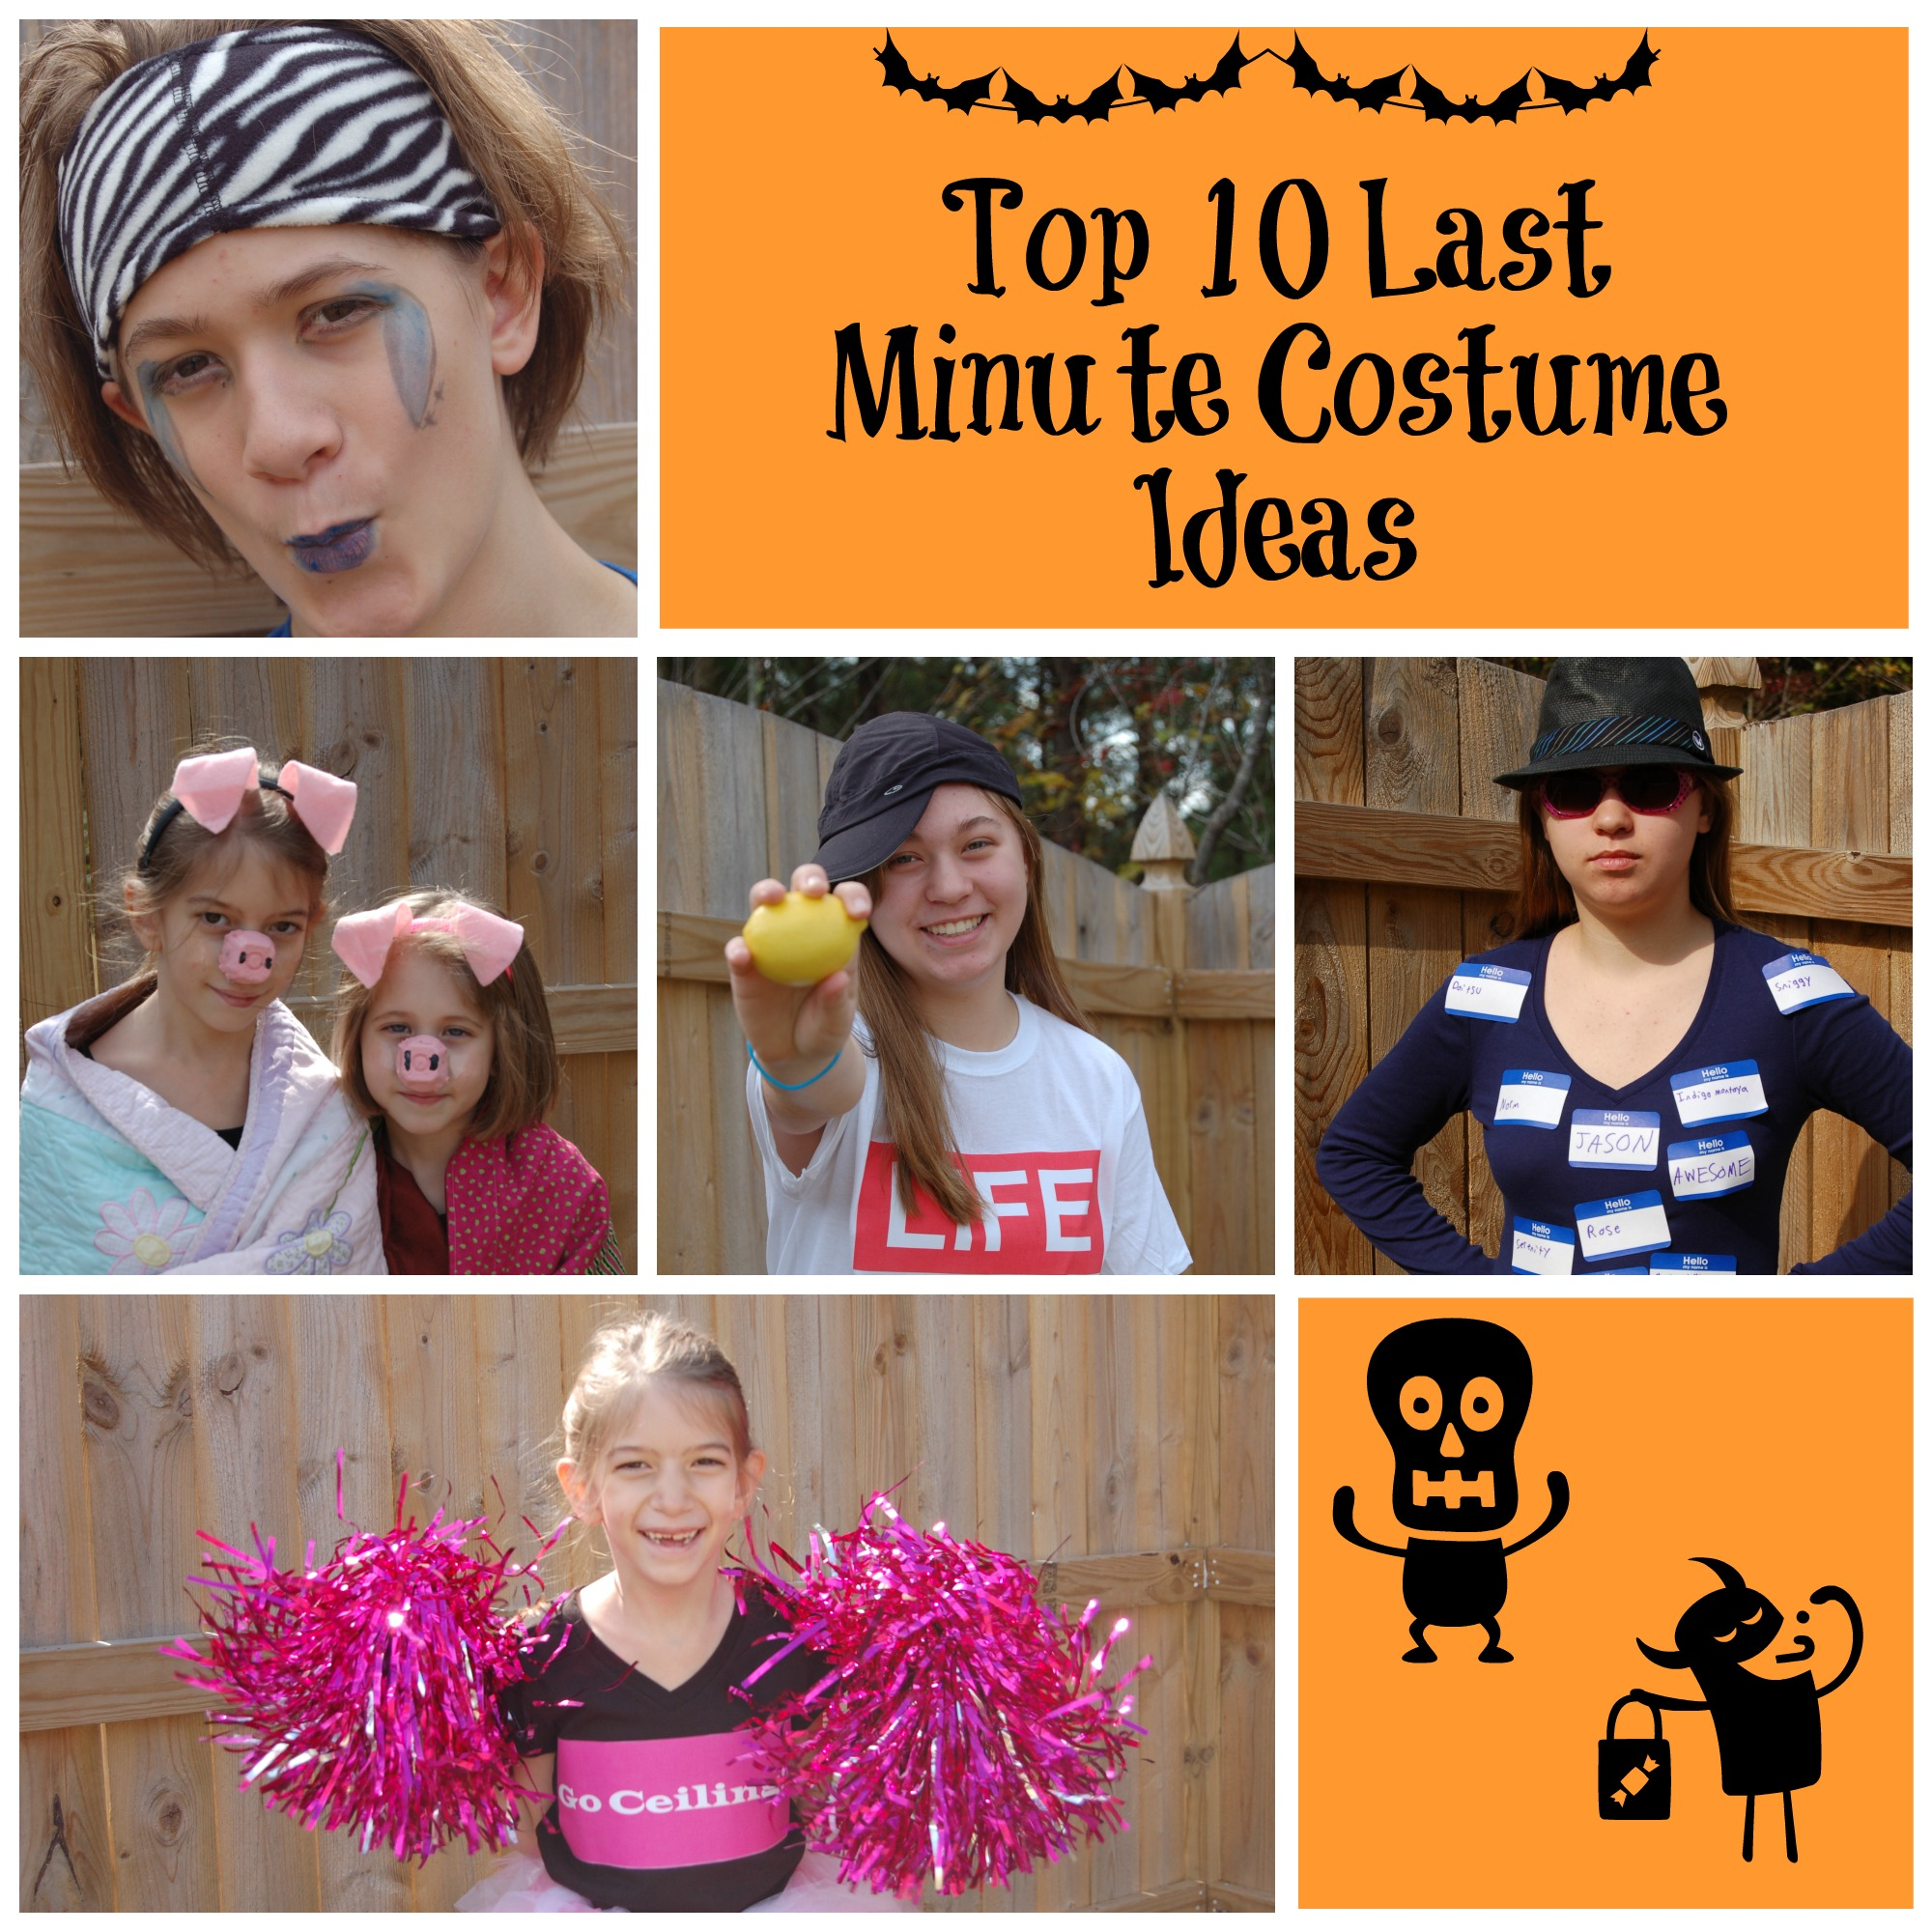 top 10 last minute costumes  sc 1 st  Almost Supermom & Top 10 Last Minute Costume Ideas - Almost Supermom